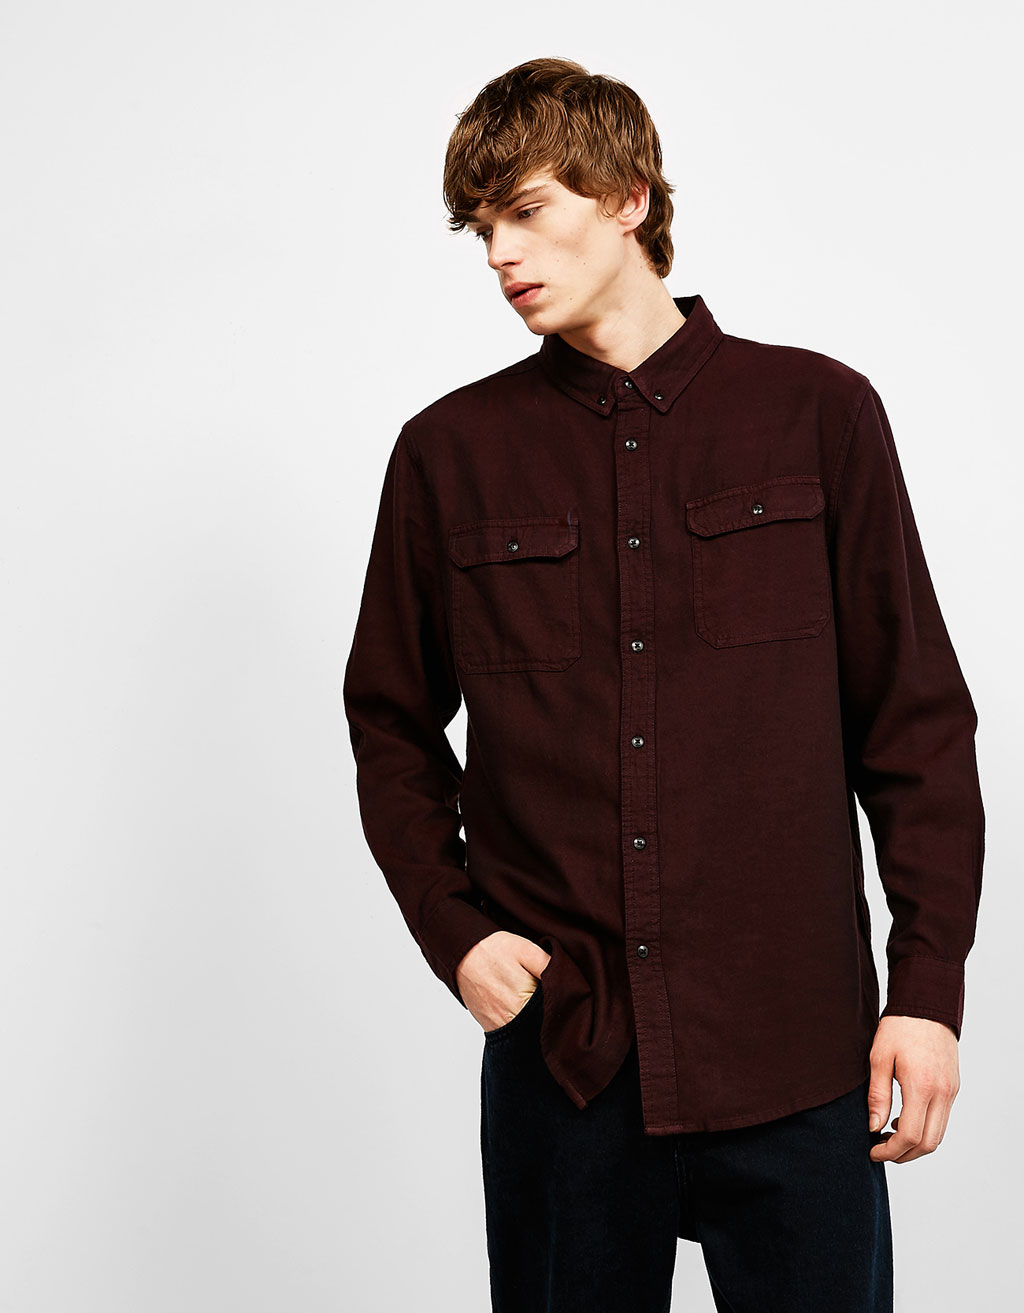 Twill flannel cotton shirt with pockets